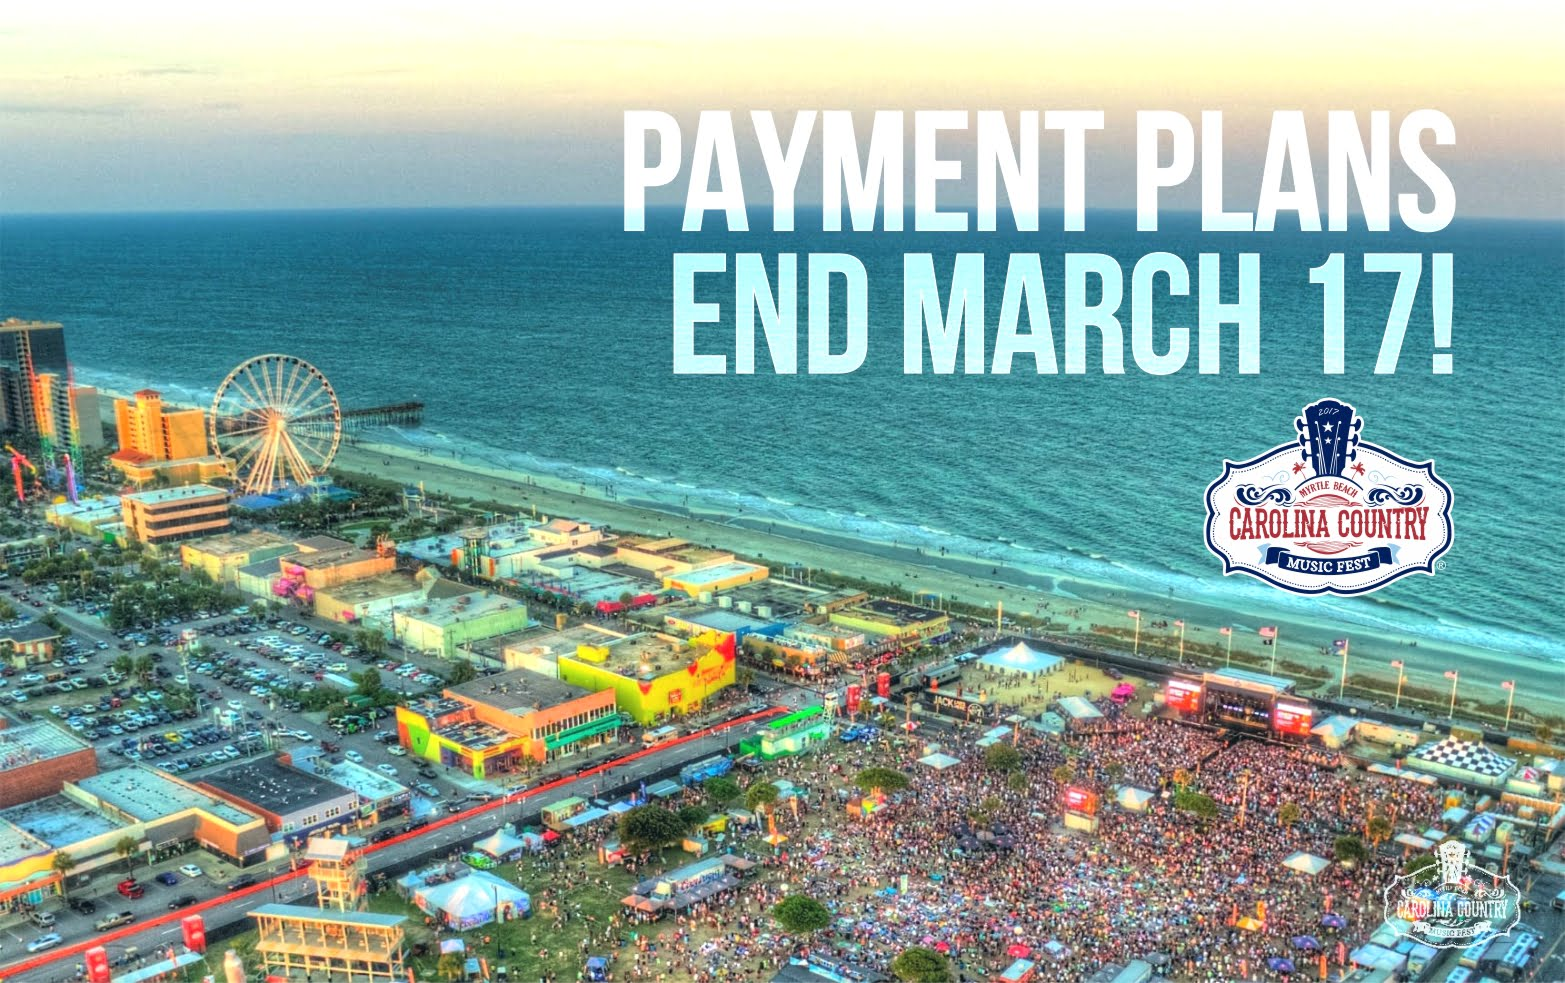 Carolina Country Payment Plan Option ENDS March 17, 2017 at Midnight